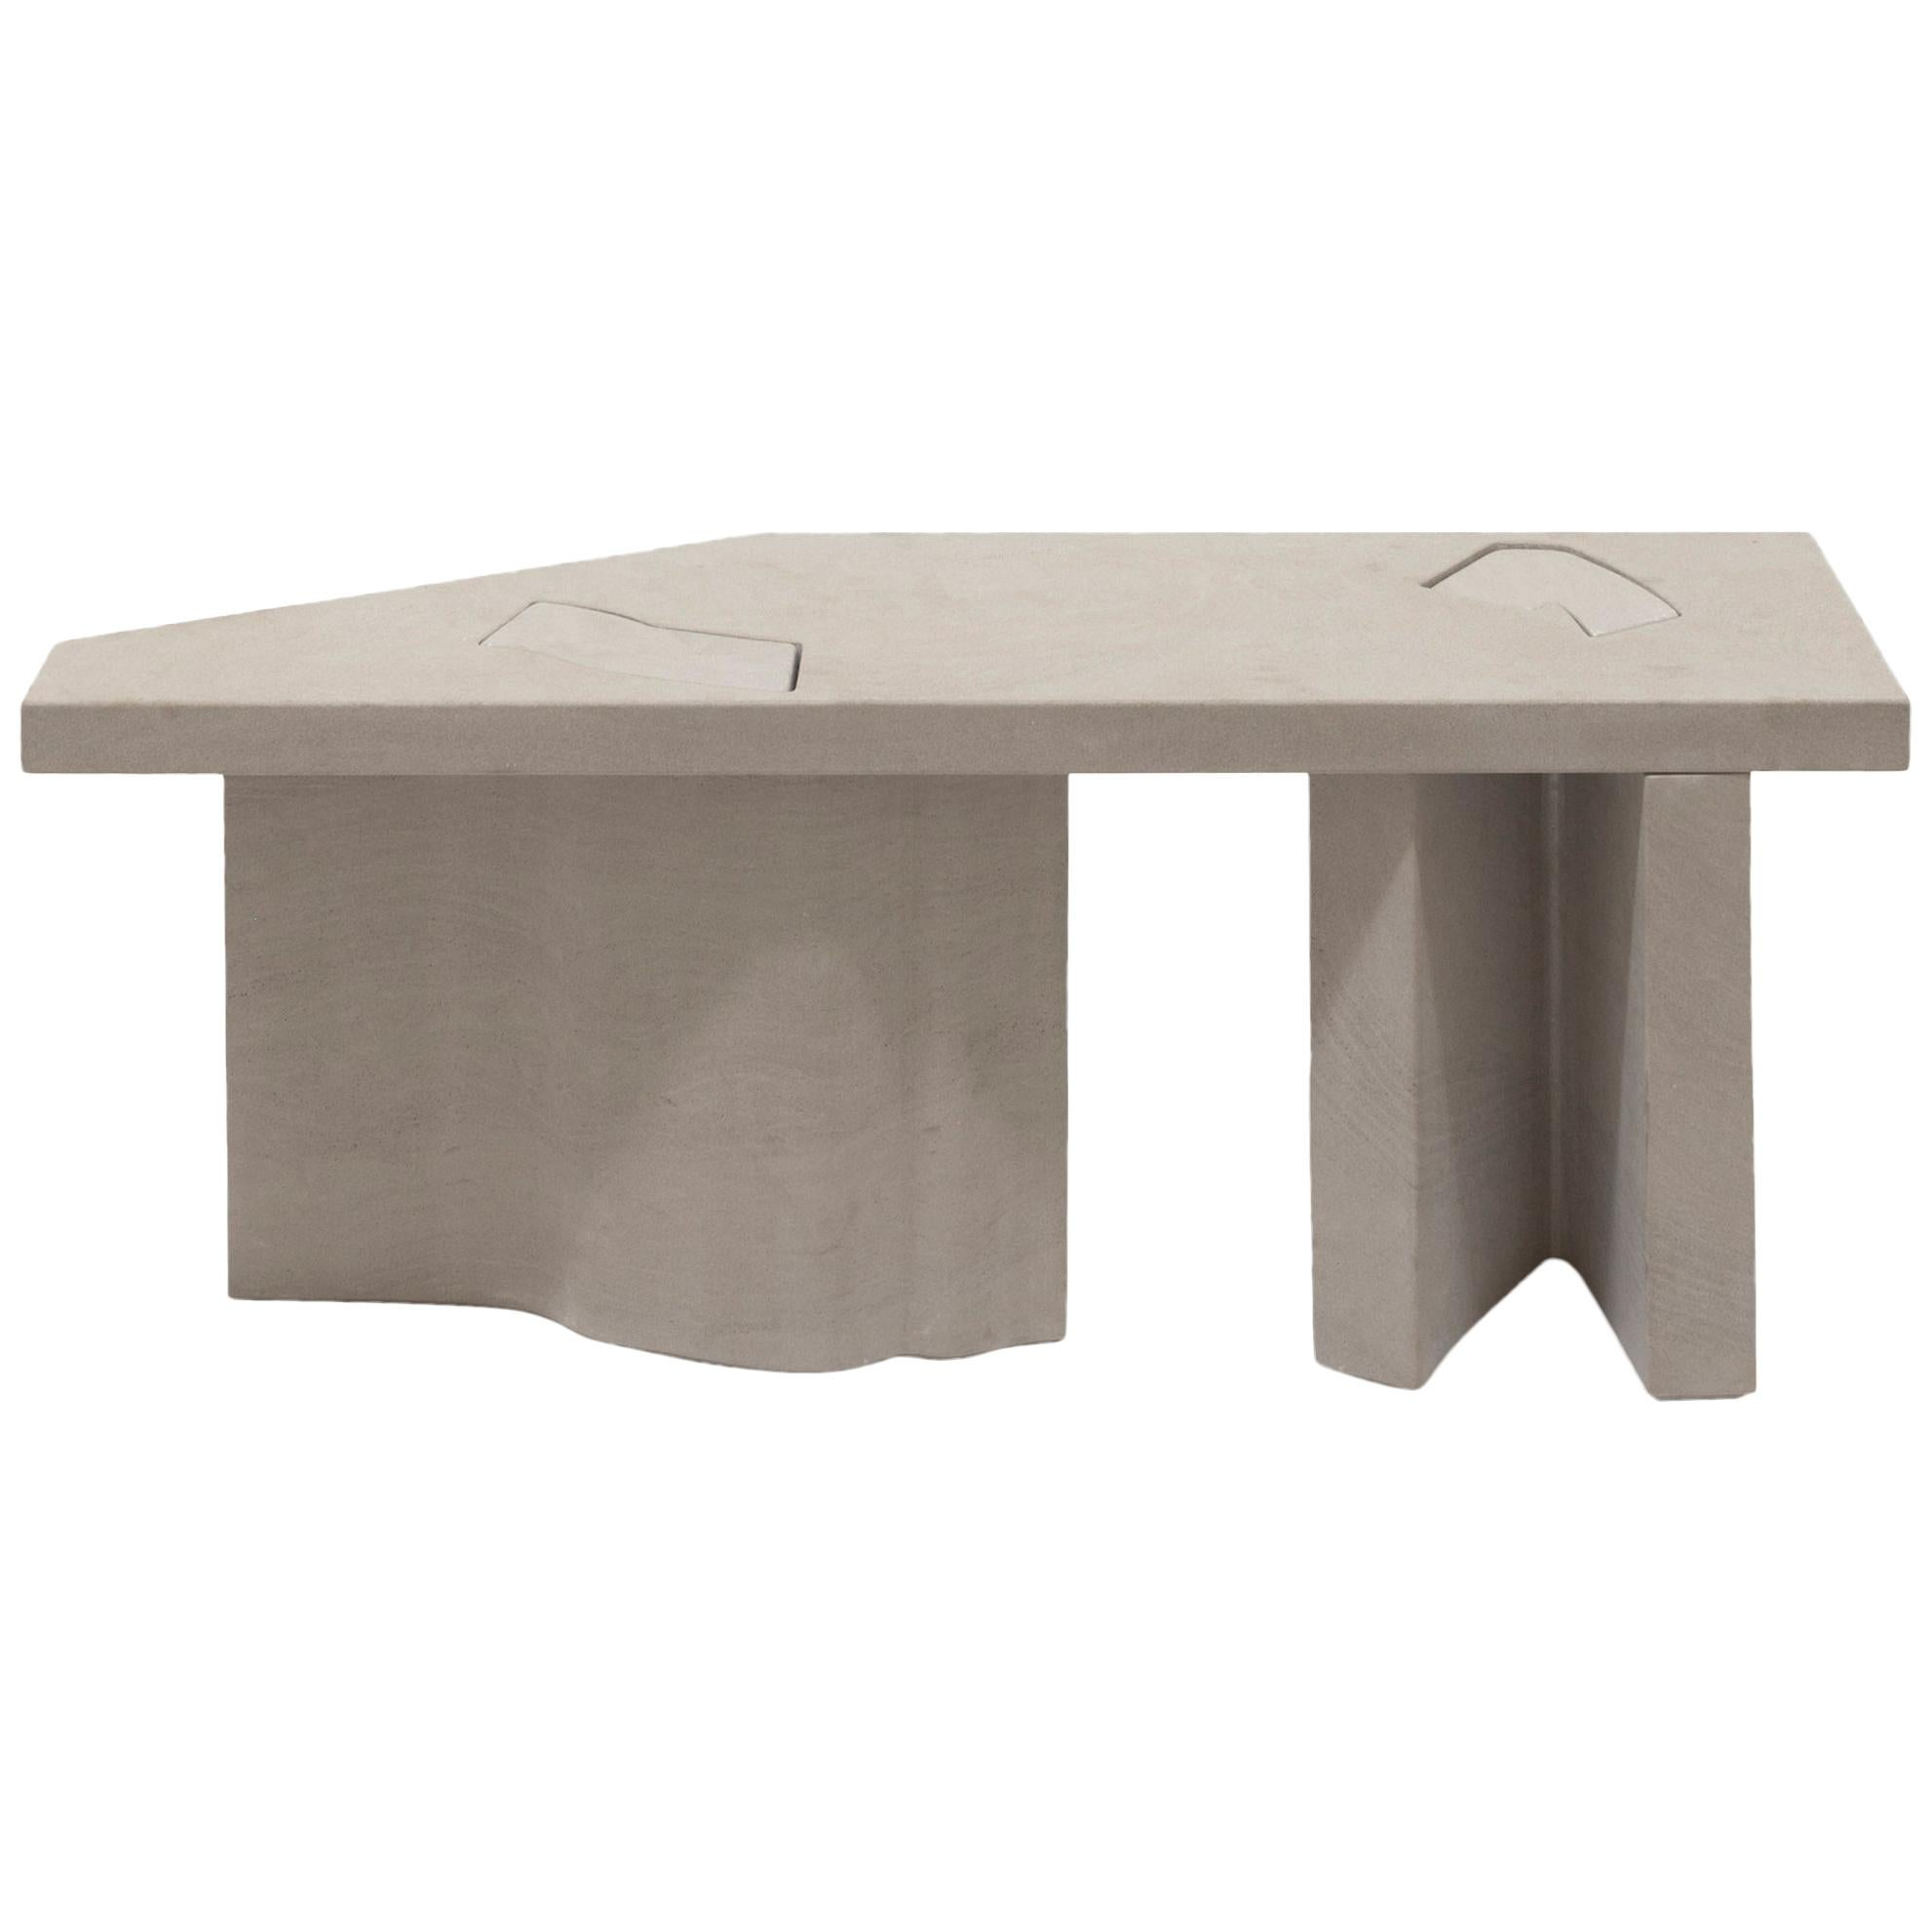 Unsighted Table 1 by Bahraini-Danish in Giallo Avorio Marble